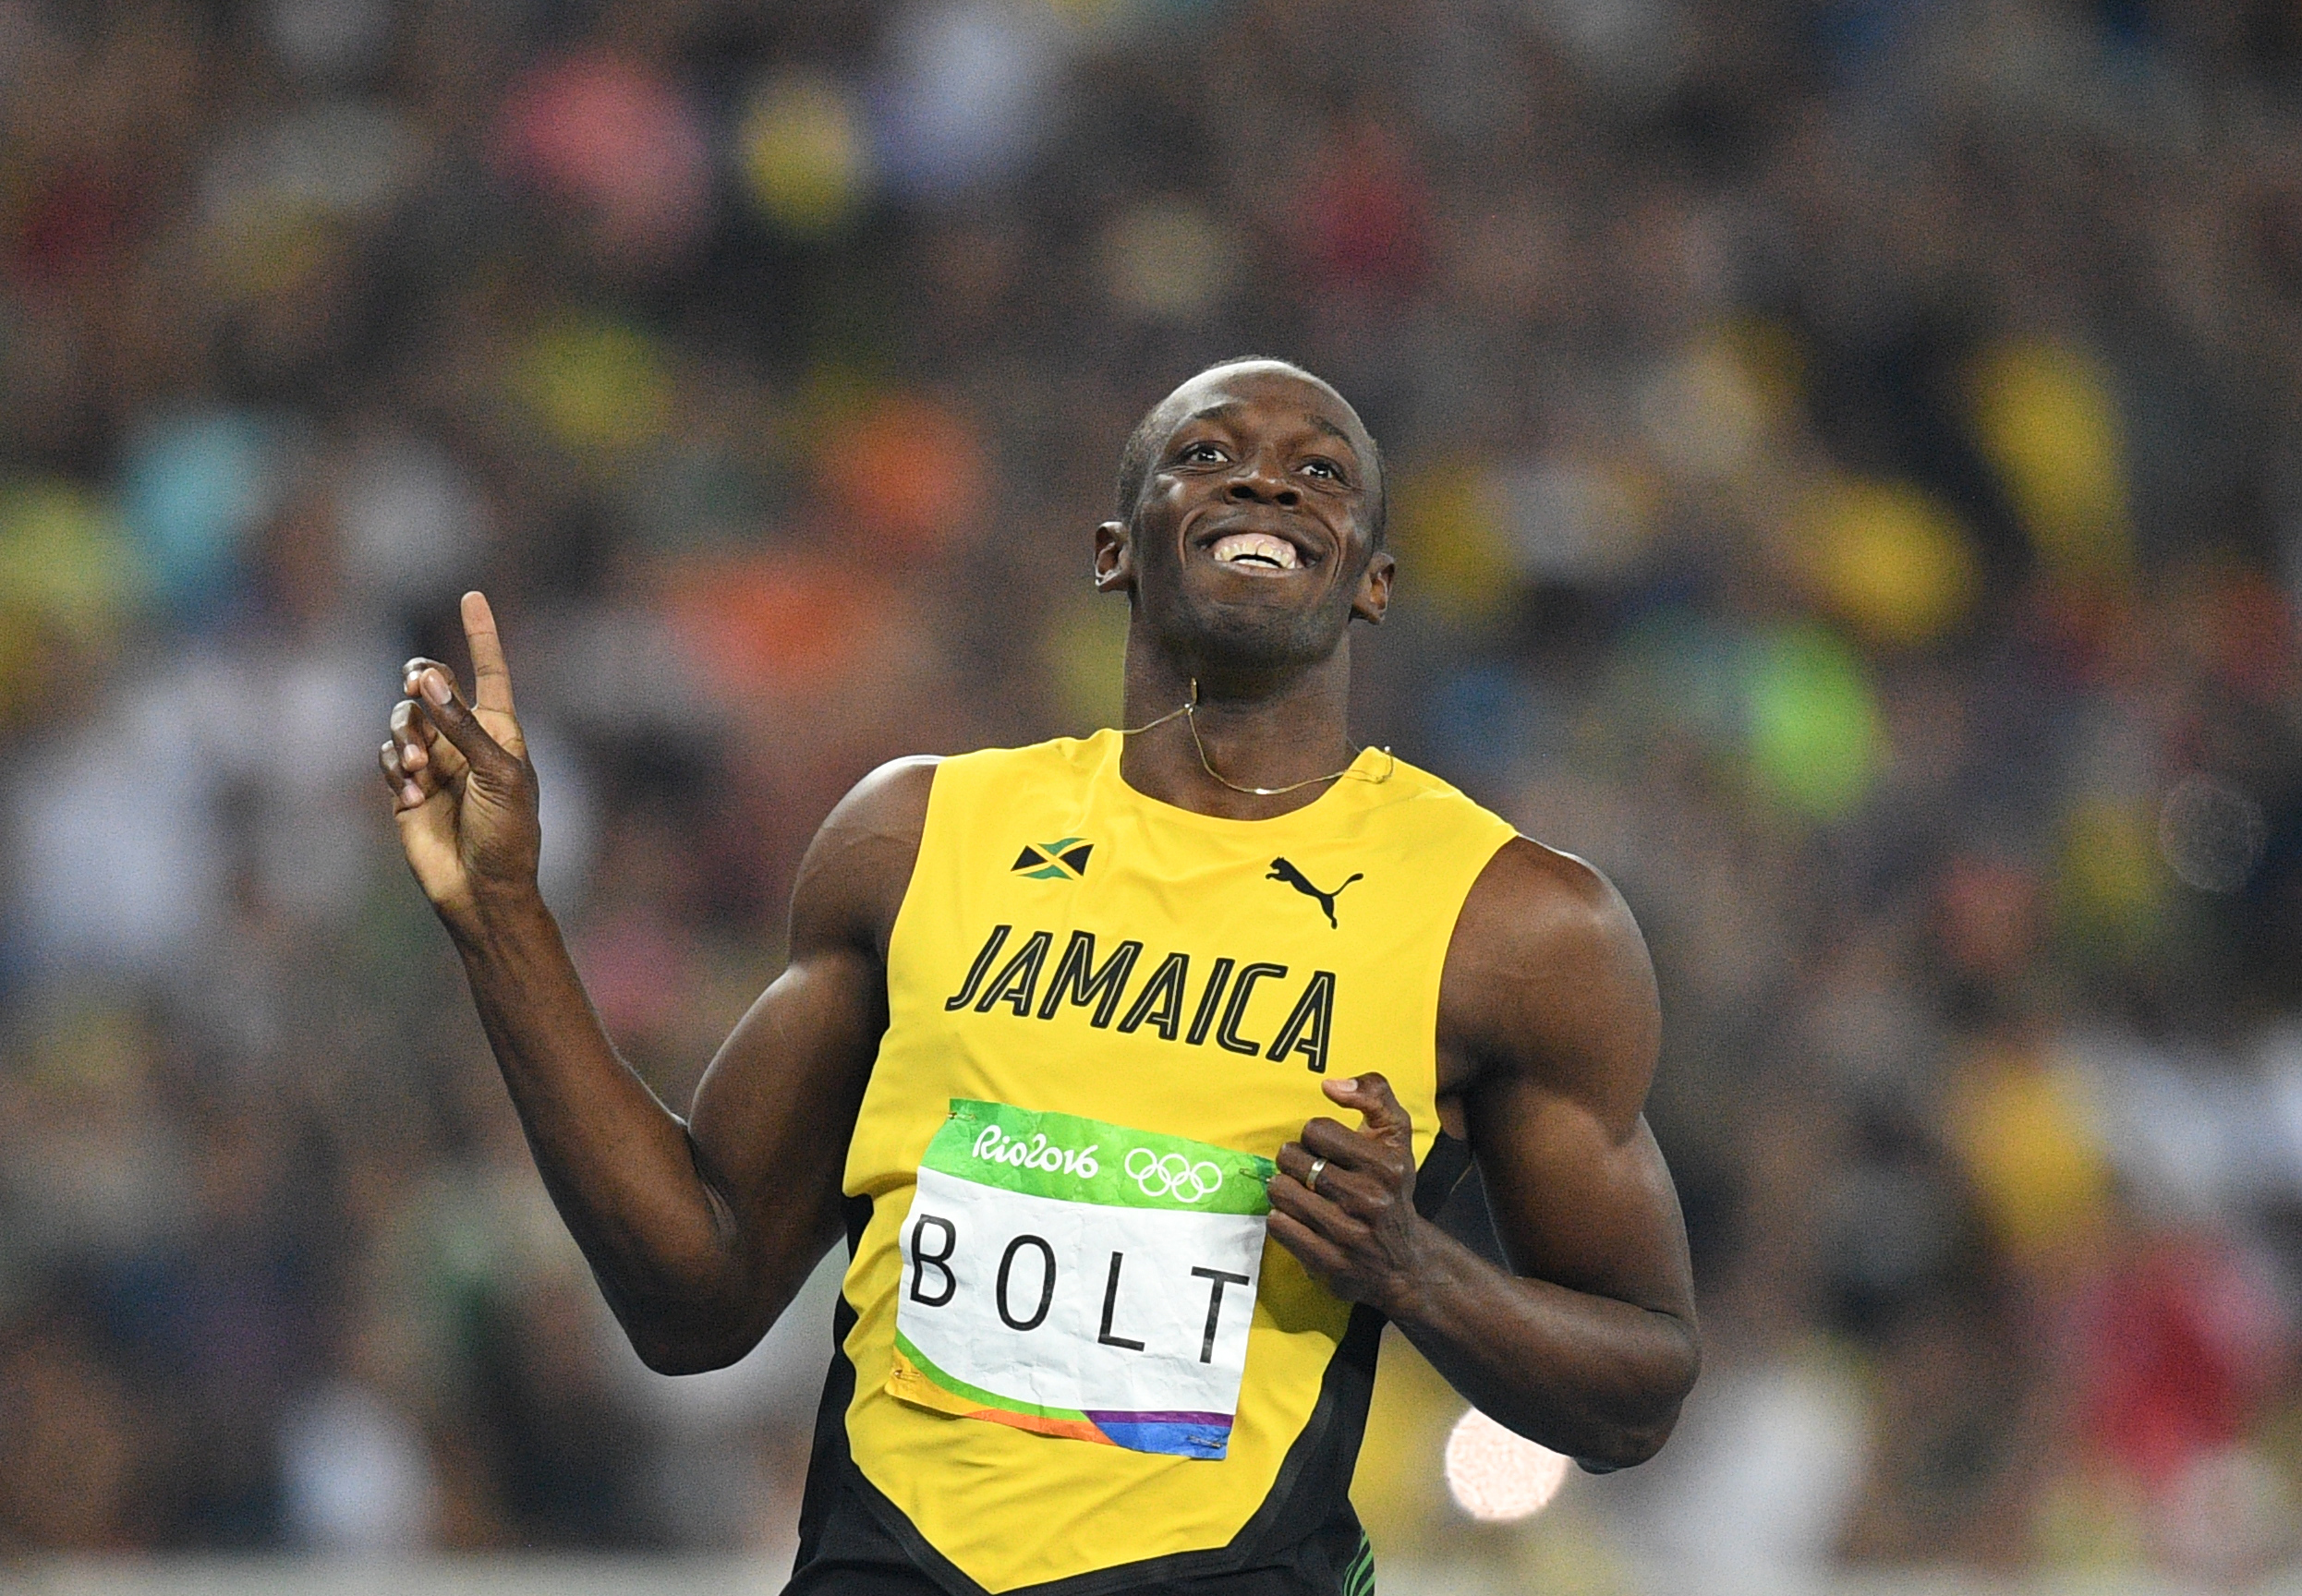 Usain bolt wallpapers images photos pictures backgrounds - Usain bolt running hd photos ...